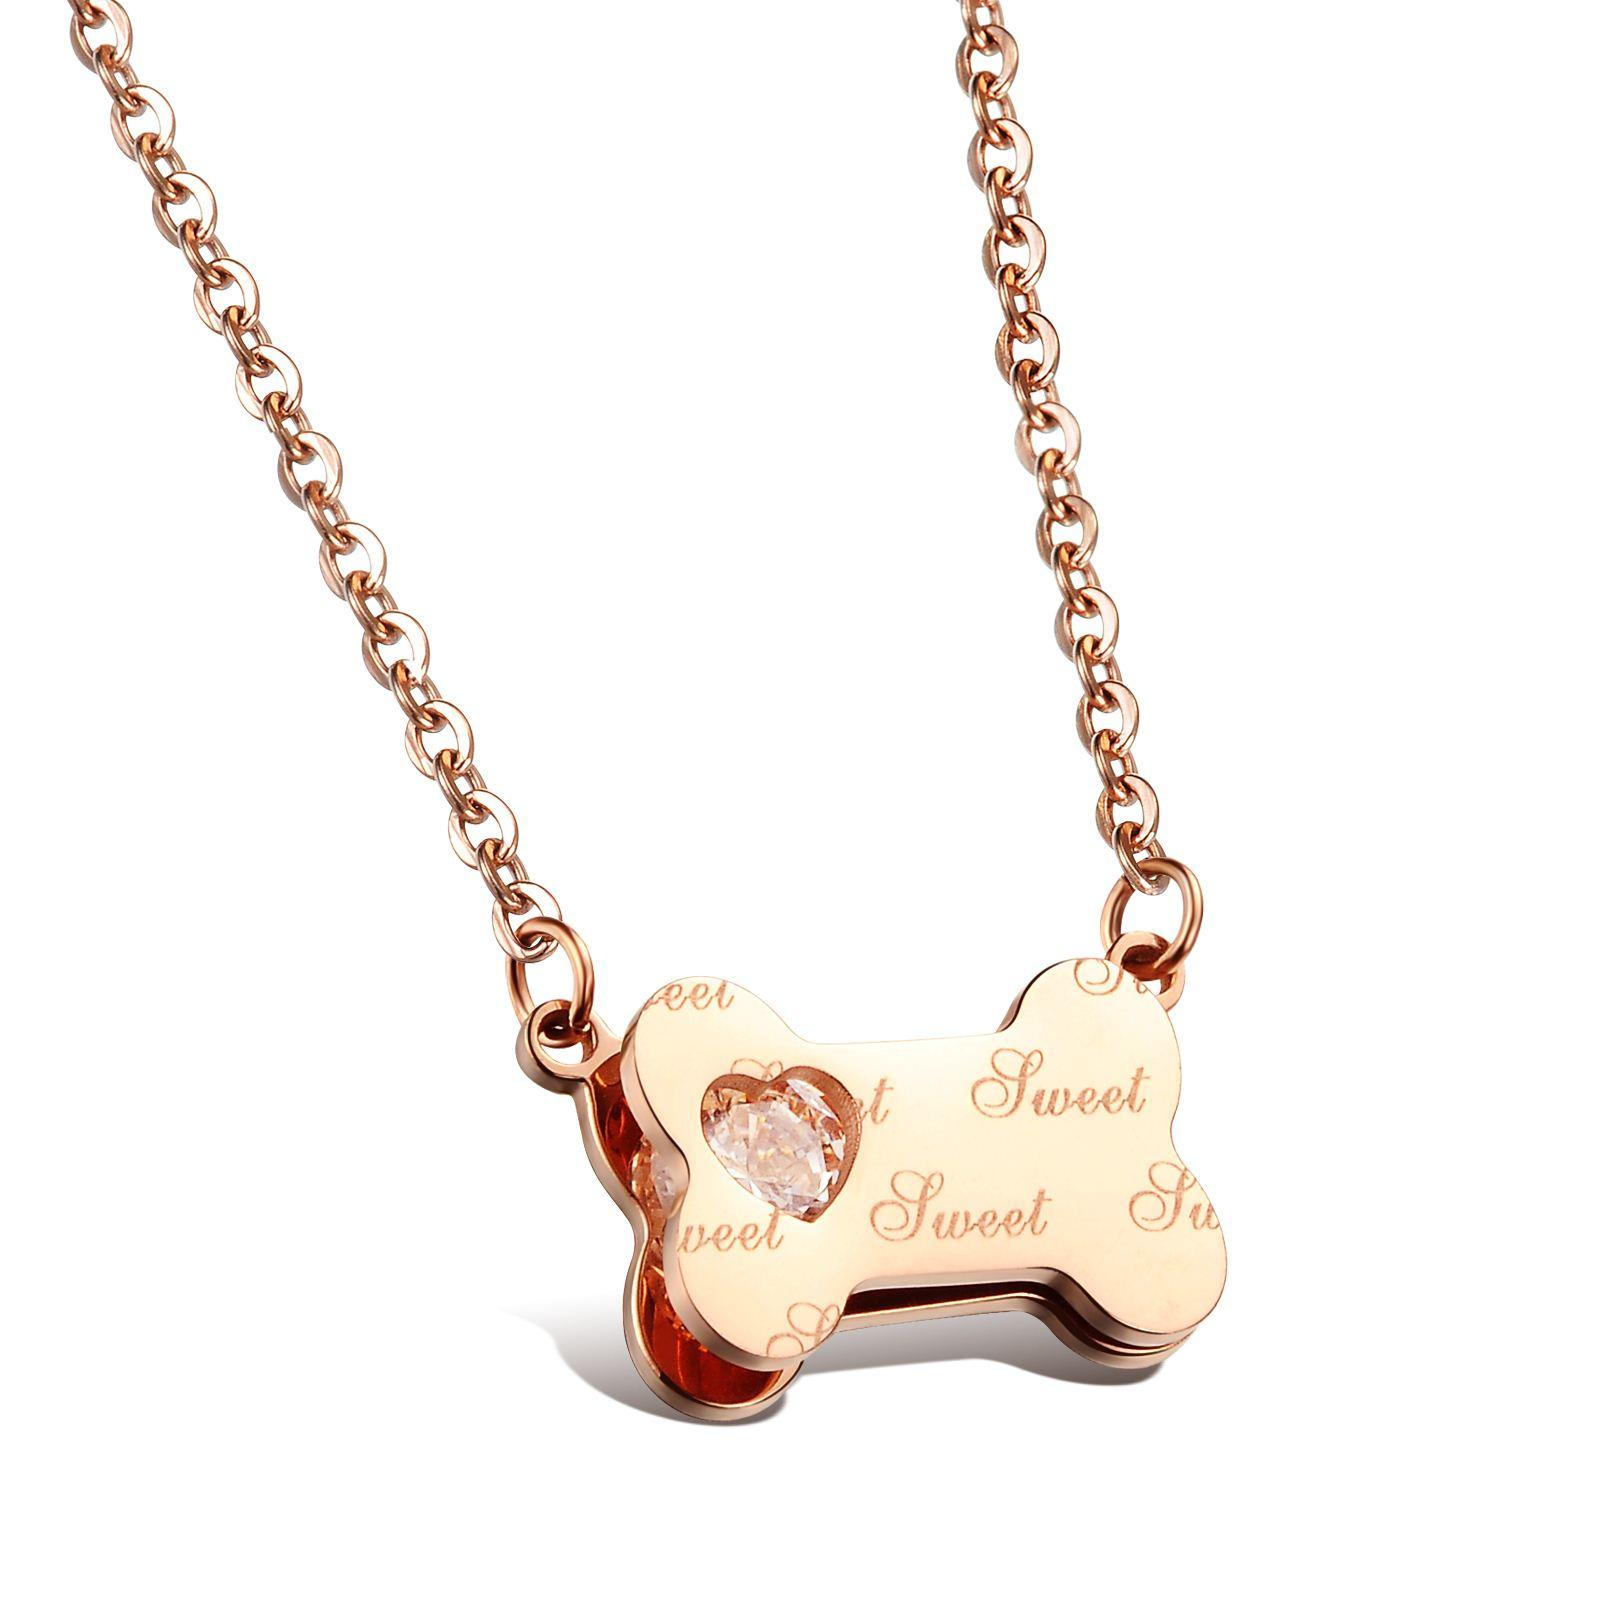 The new steel pendant necklace Girls Sweet bones small commodity wholesale bestie send to send his girlfriend N989